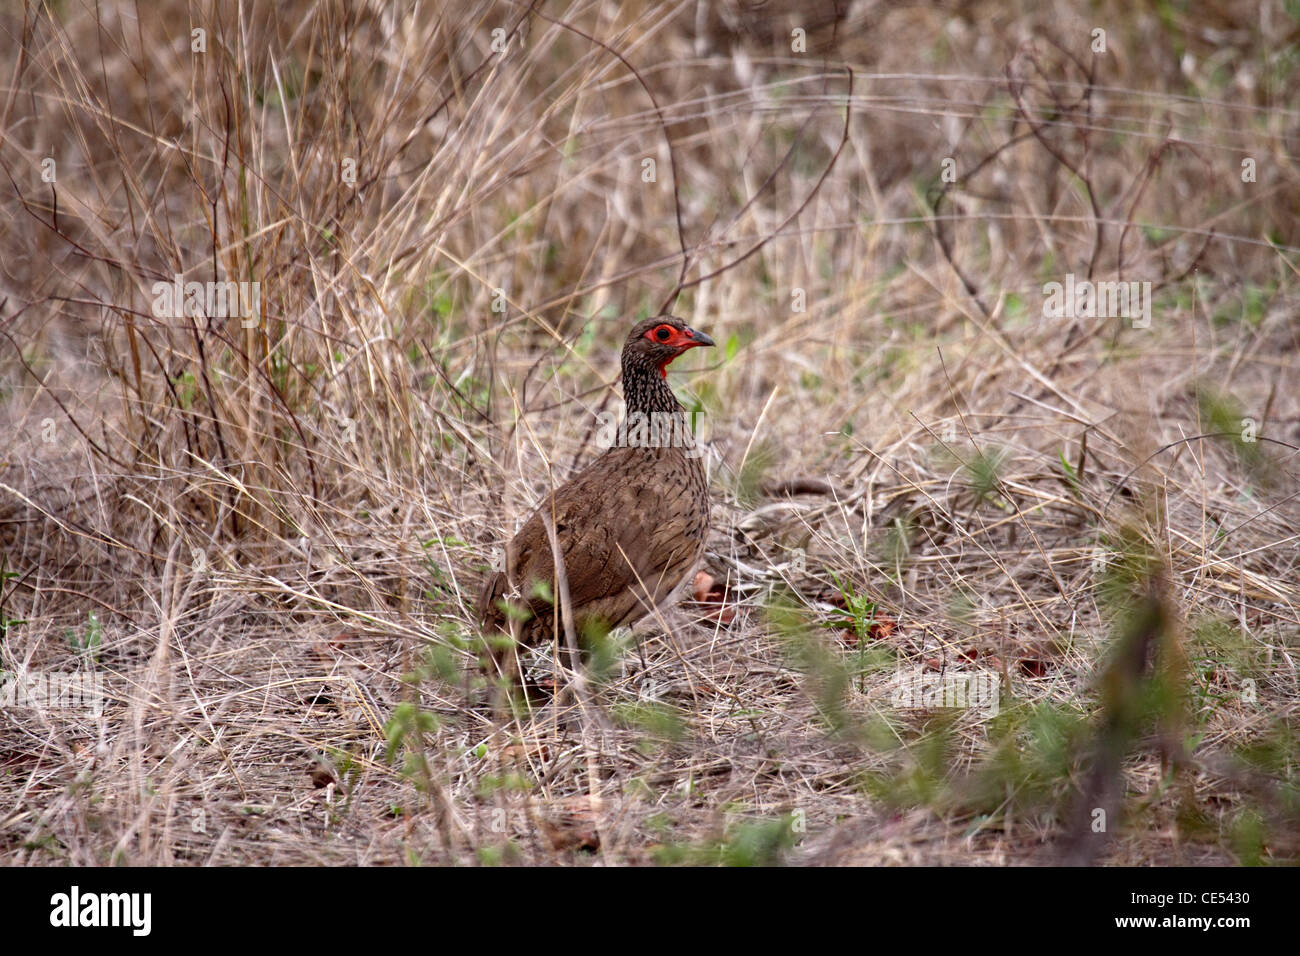 Swainsons spur fowl at edge of thicket in Namibia - Stock Image